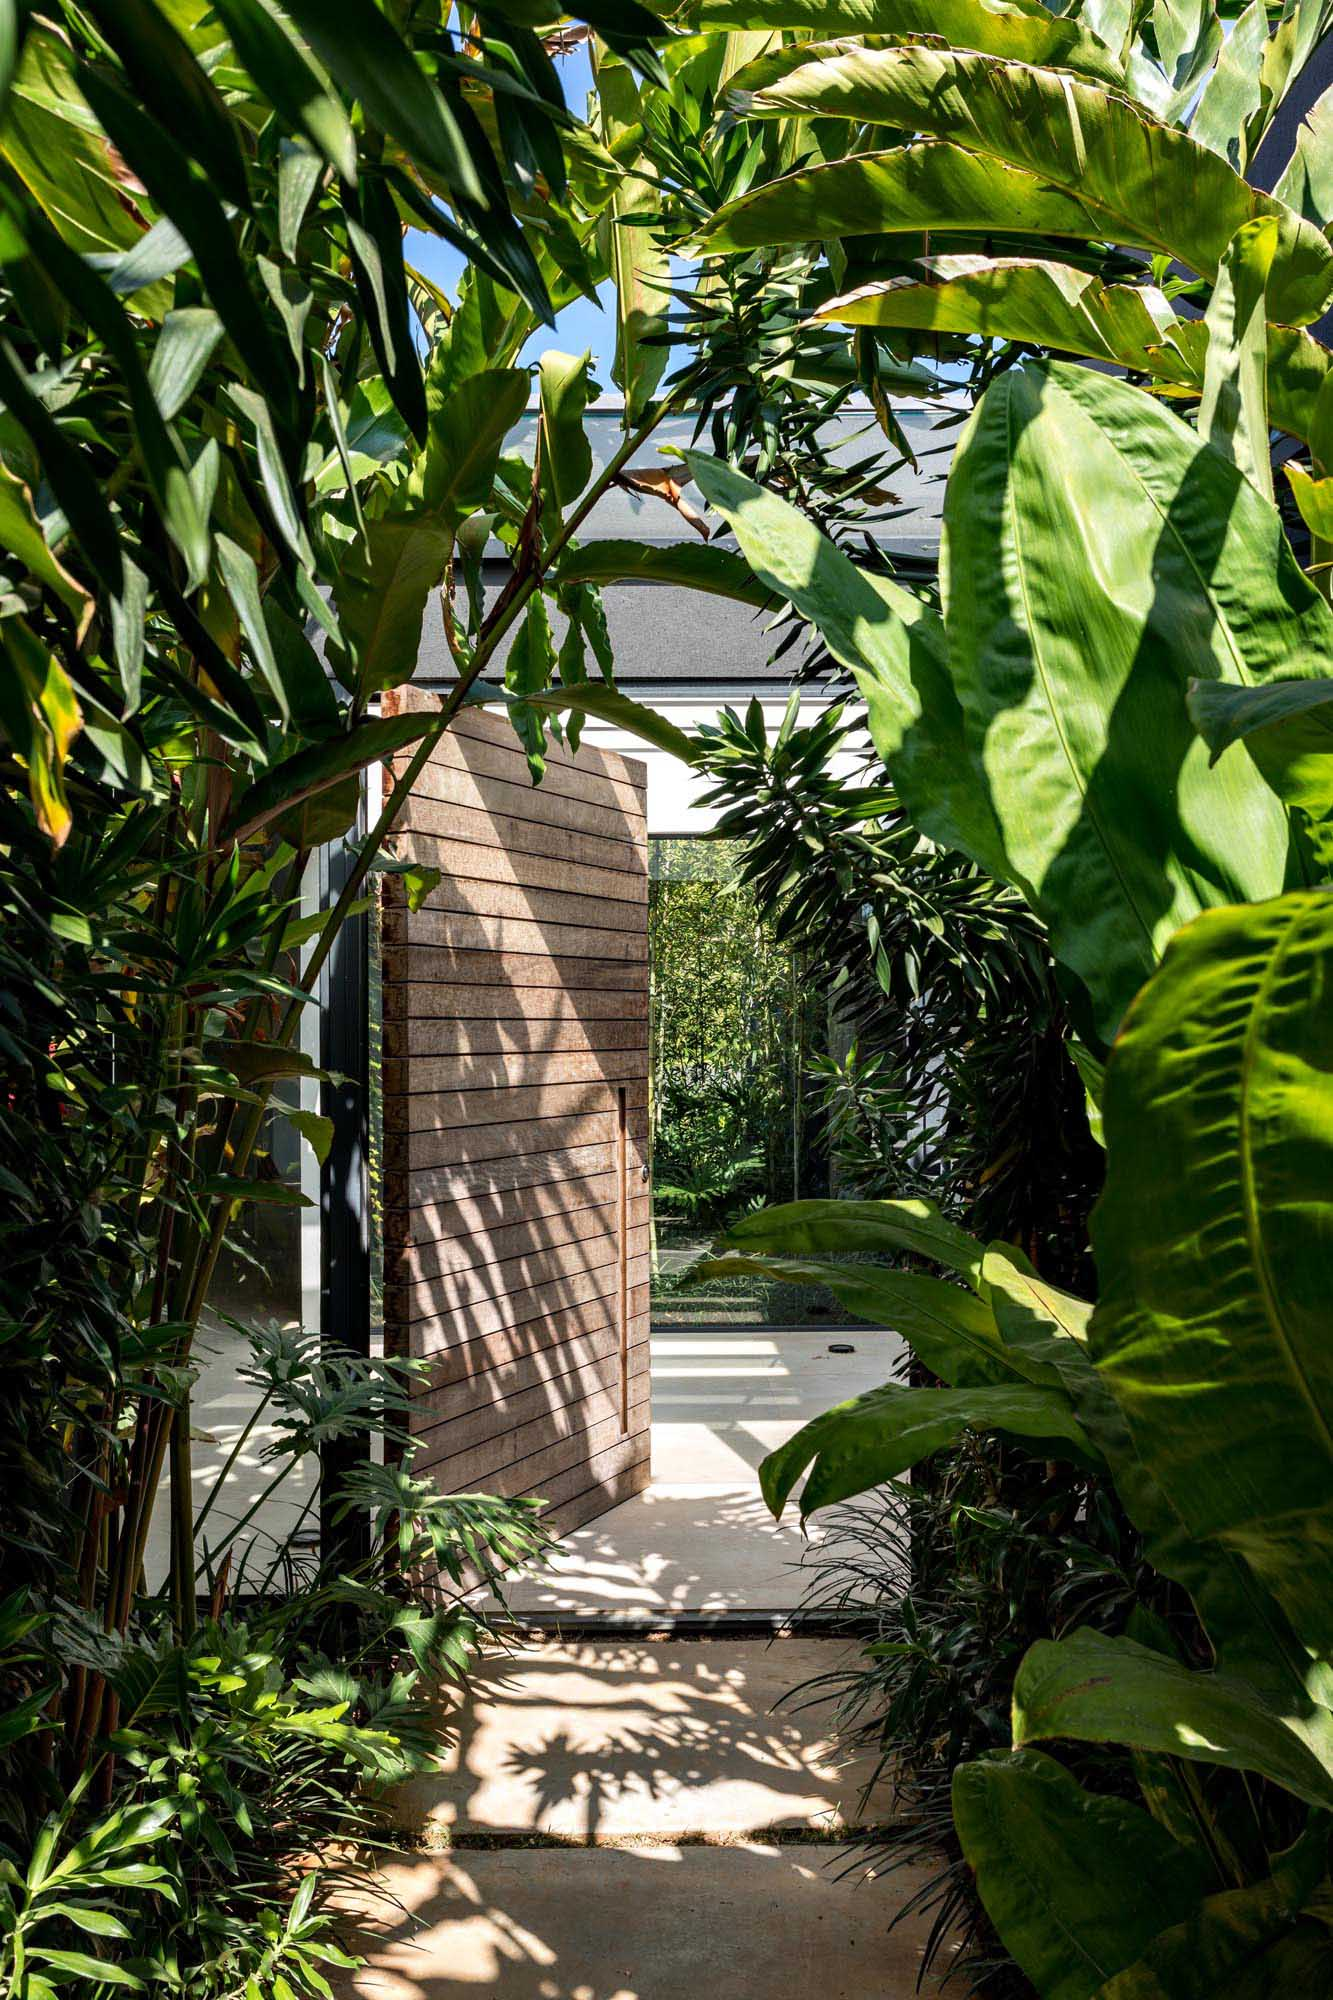 Tropical plants line a pathway that leads to the entryway of the home, where you'll find a pivoting front door with views of a garden through glass walls.